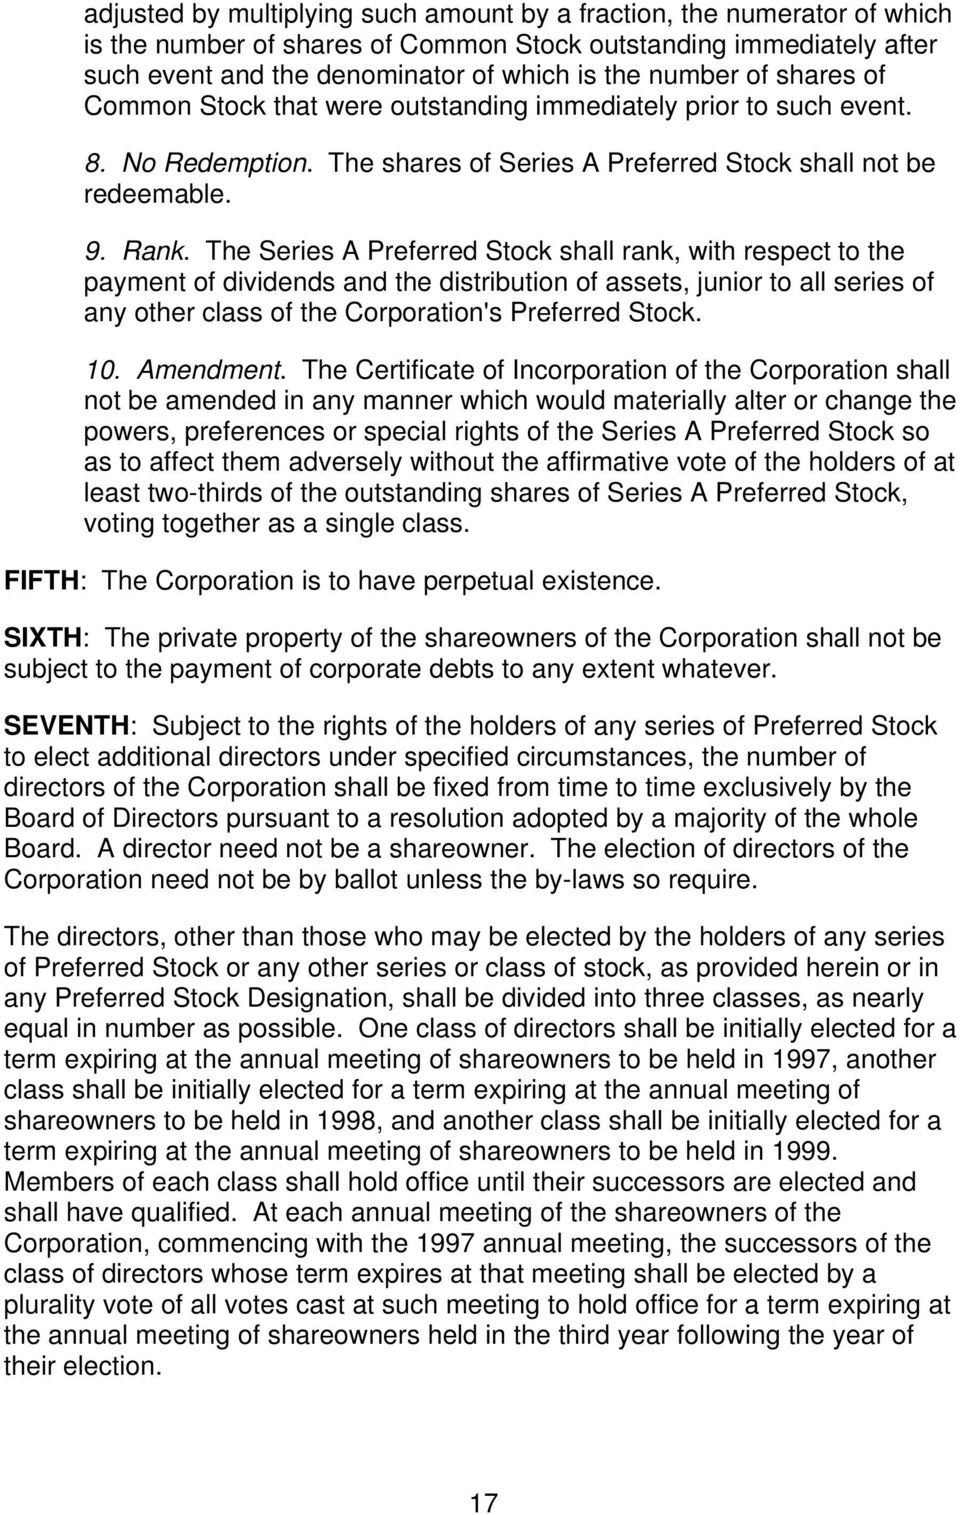 The Series A Preferred Stock shall rank, with respect to the payment of dividends and the distribution of assets, junior to all series of any other class of the Corporation's Preferred Stock. 10.